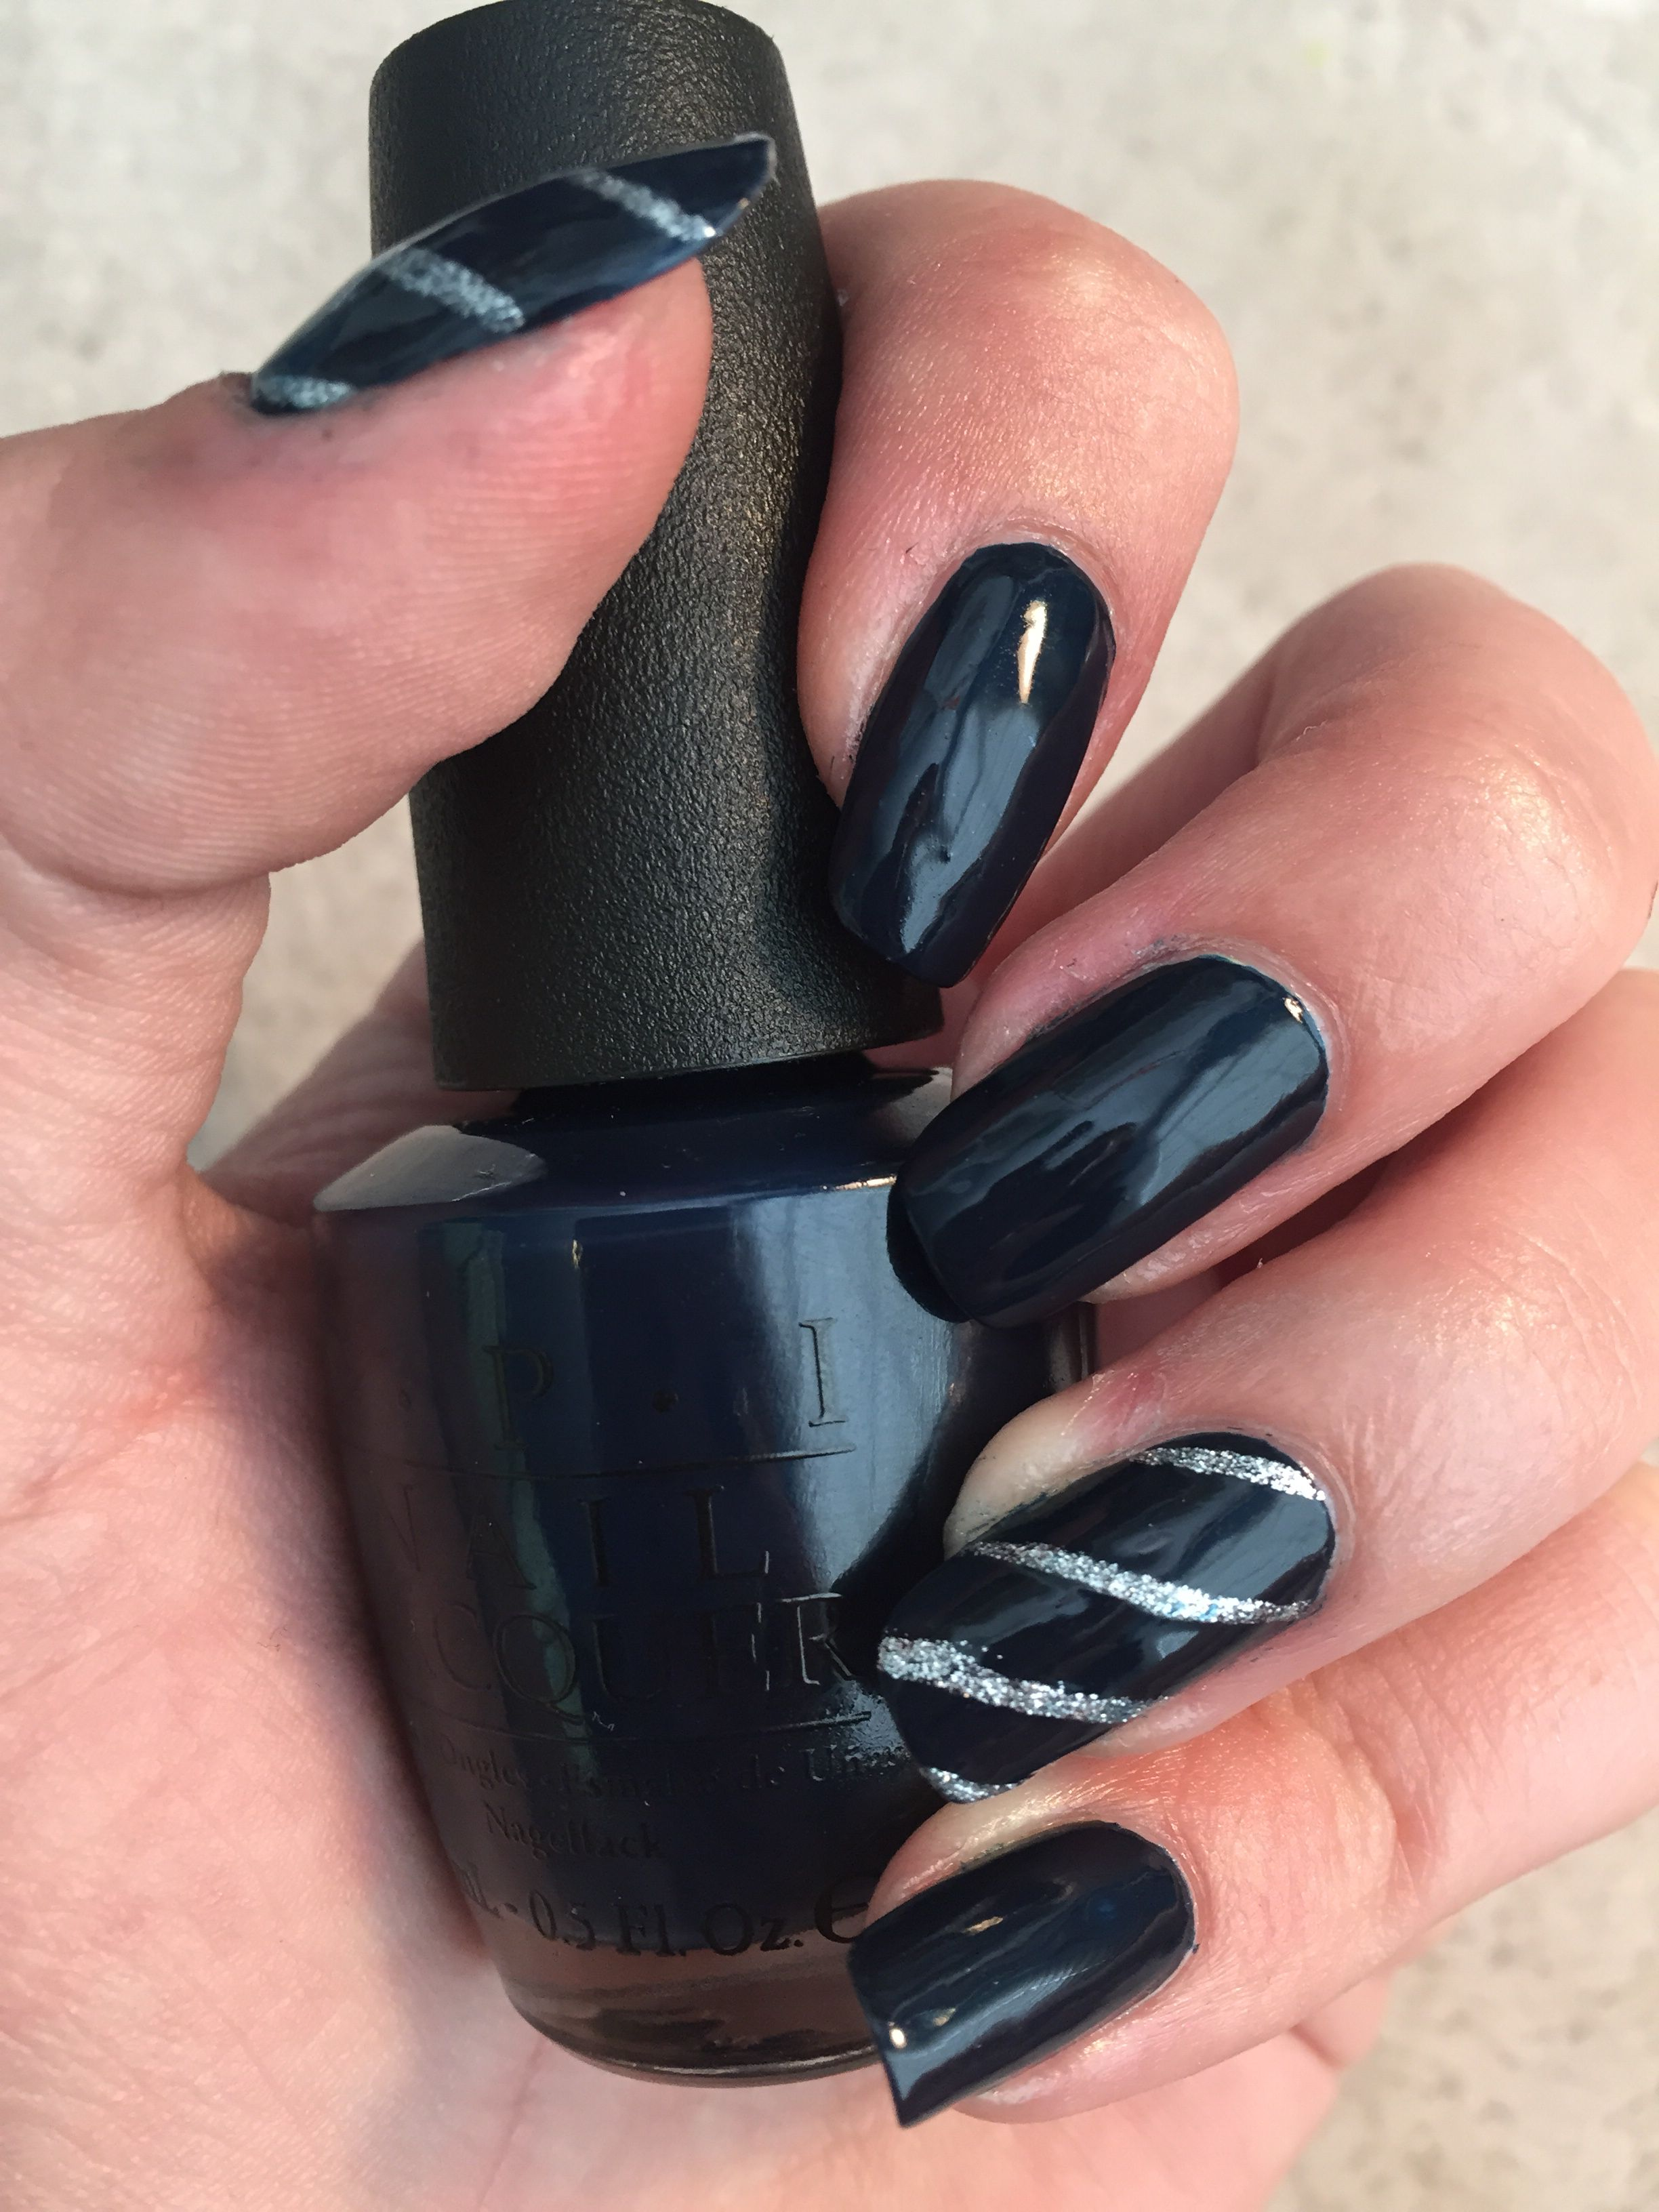 OPI incognito in Sausalito (dark blue) and Kiss Nail Art Paint in ...